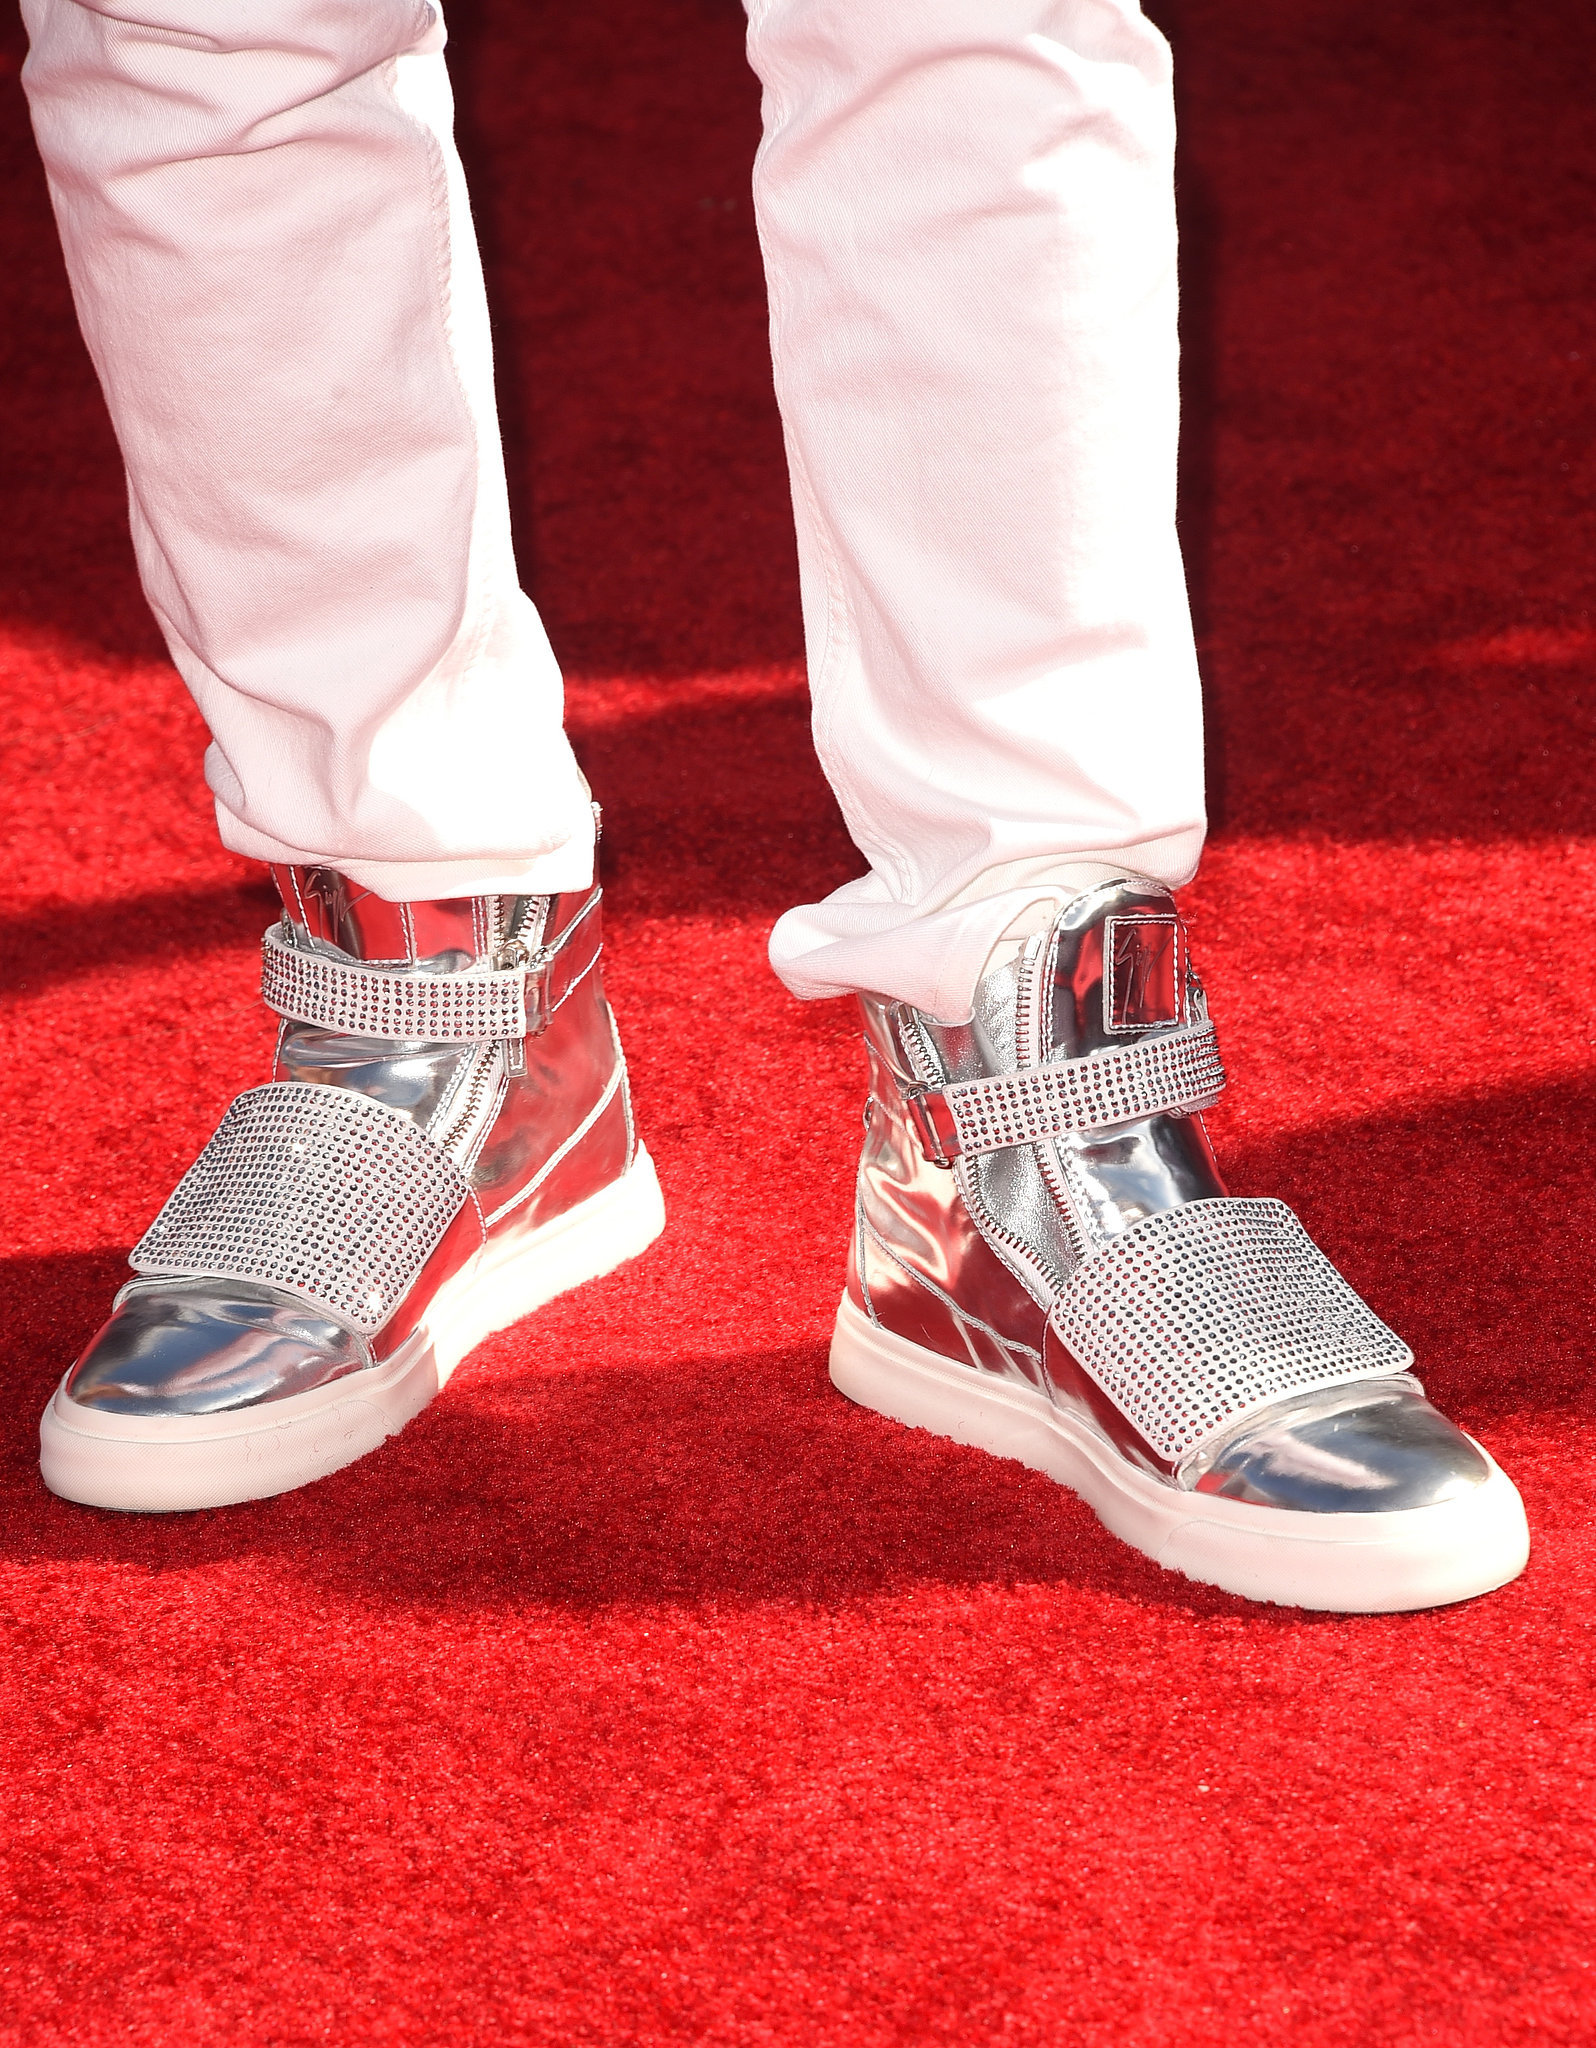 Jason Derulo's silver Giuseppe Zanotti sneakers made quite the statement.